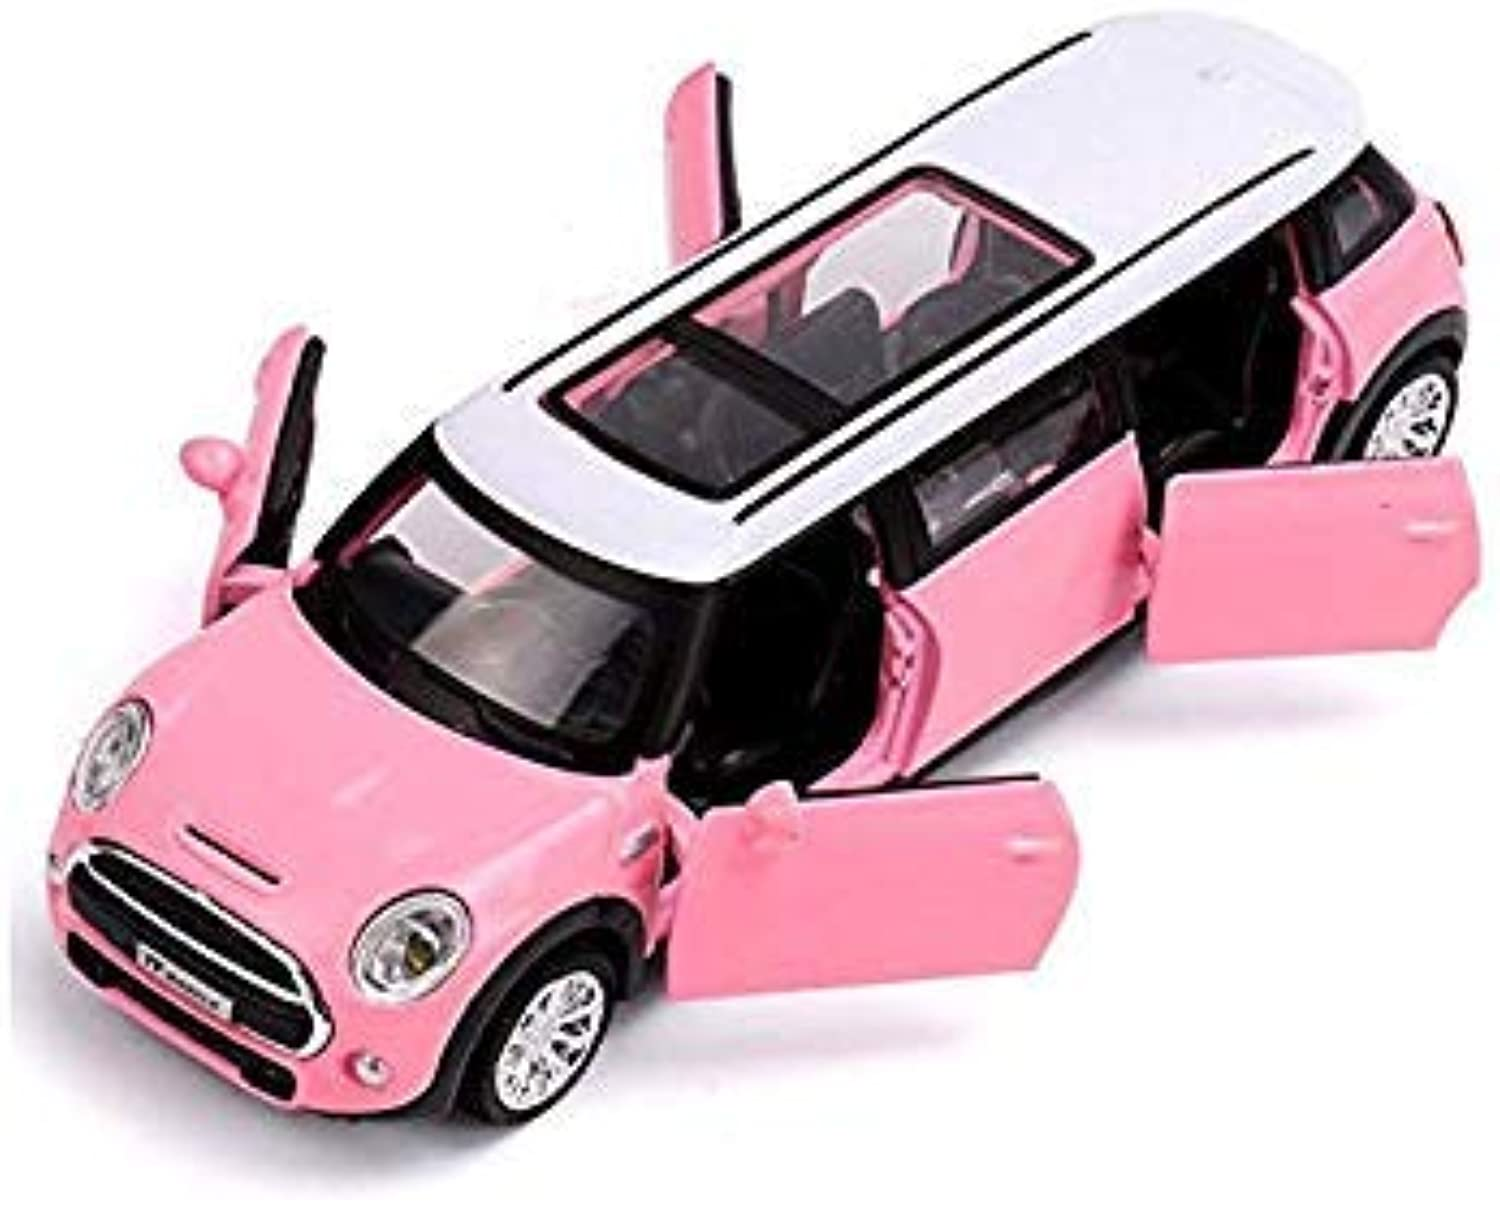 Diecast Toy Model 1 36 Scale Mini Cooper Car Pull Back Sound & Light Car Educational Collection Gift Pink